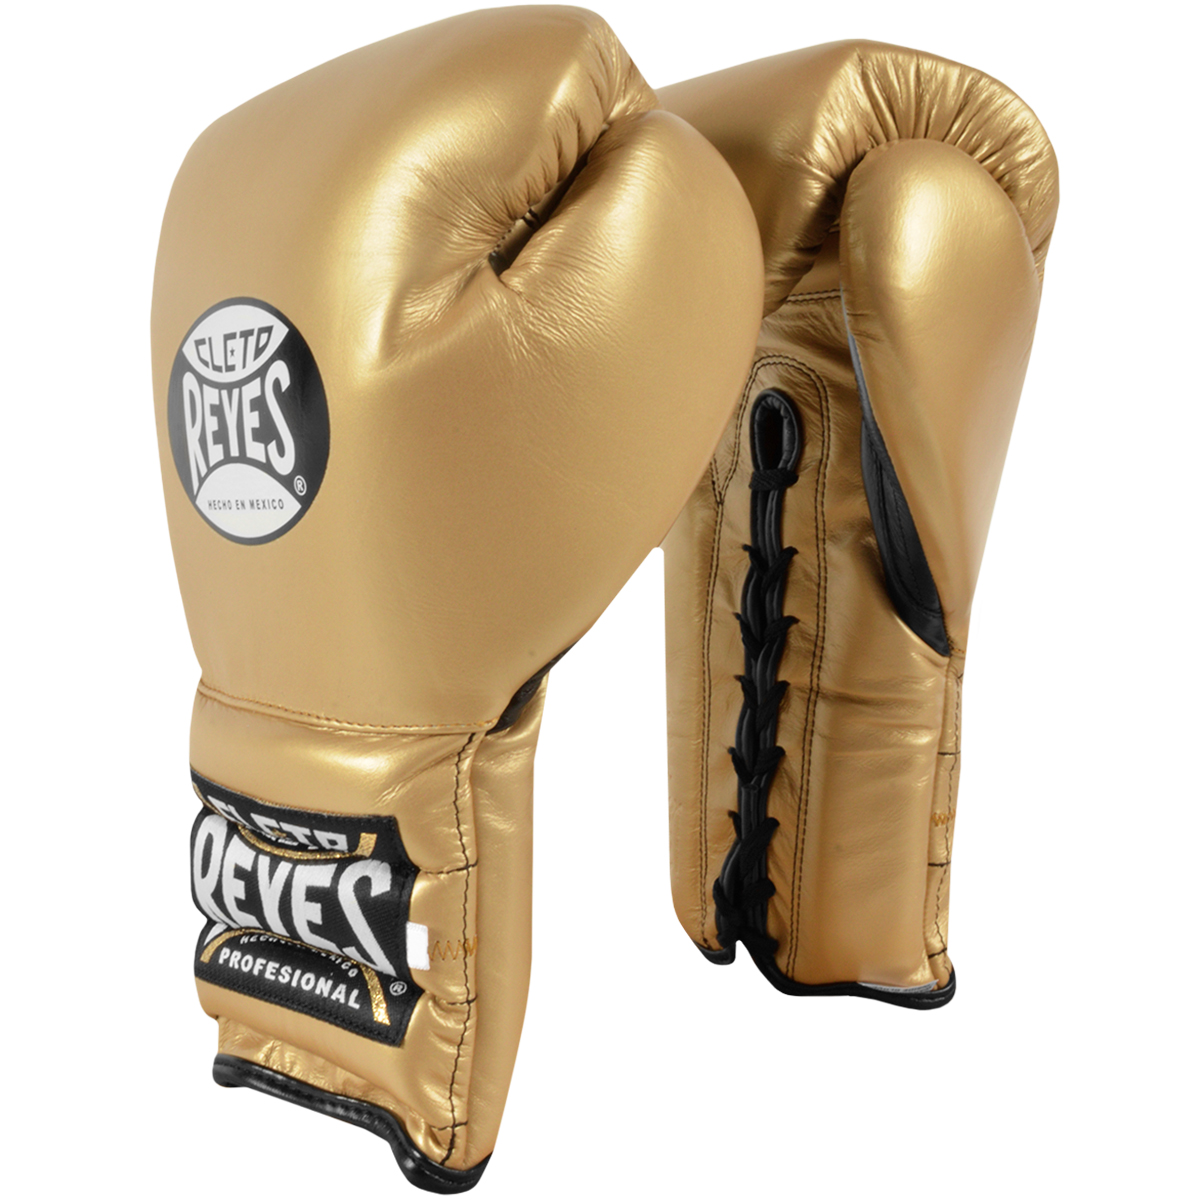 Solid Gold Cleto Reyes Lace Up Hook and Loop Hybrid Boxing Gloves